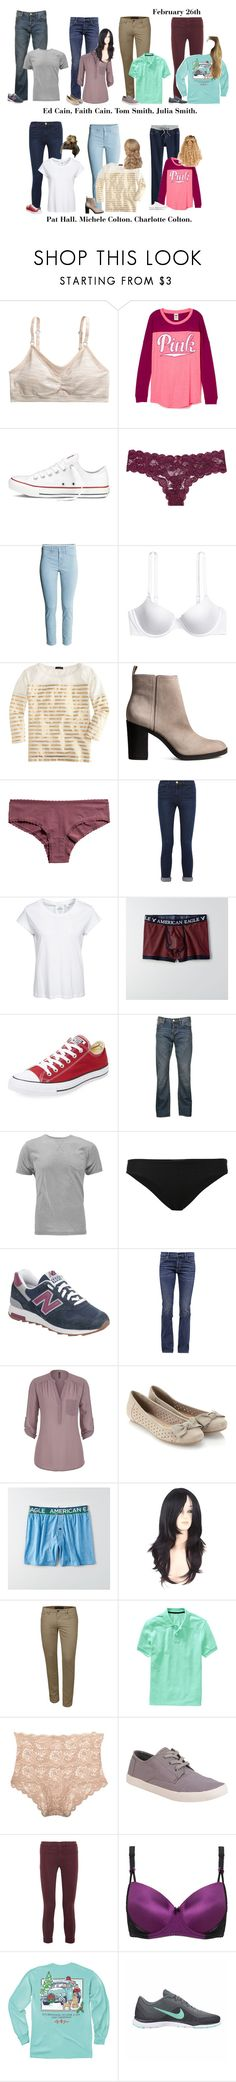 """""""Autumn's Baby Shower"""" by our-poly-friends ❤ liked on Polyvore featuring Converse, Victoria's Secret, J.Crew, Frame, Cheap Monday, American Eagle Outfitters, Paul Smith, ONIA, New Balance and Citizens of Humanity"""